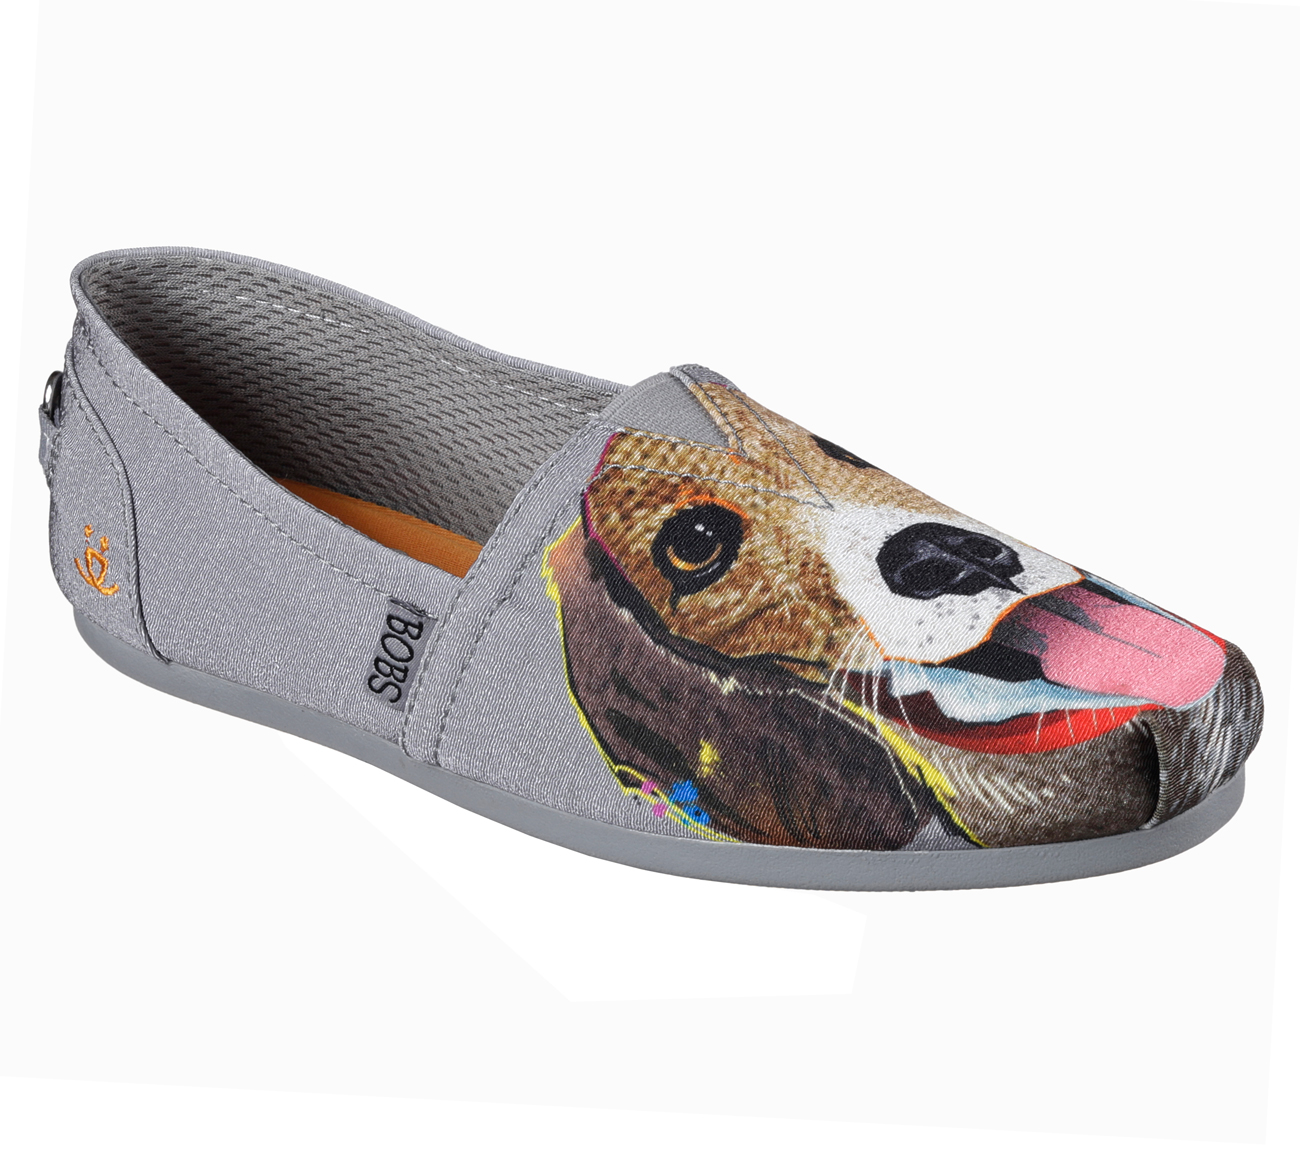 Buy Skechers Bobs Plush Paw Fection Bobs Shoes Only 45 00